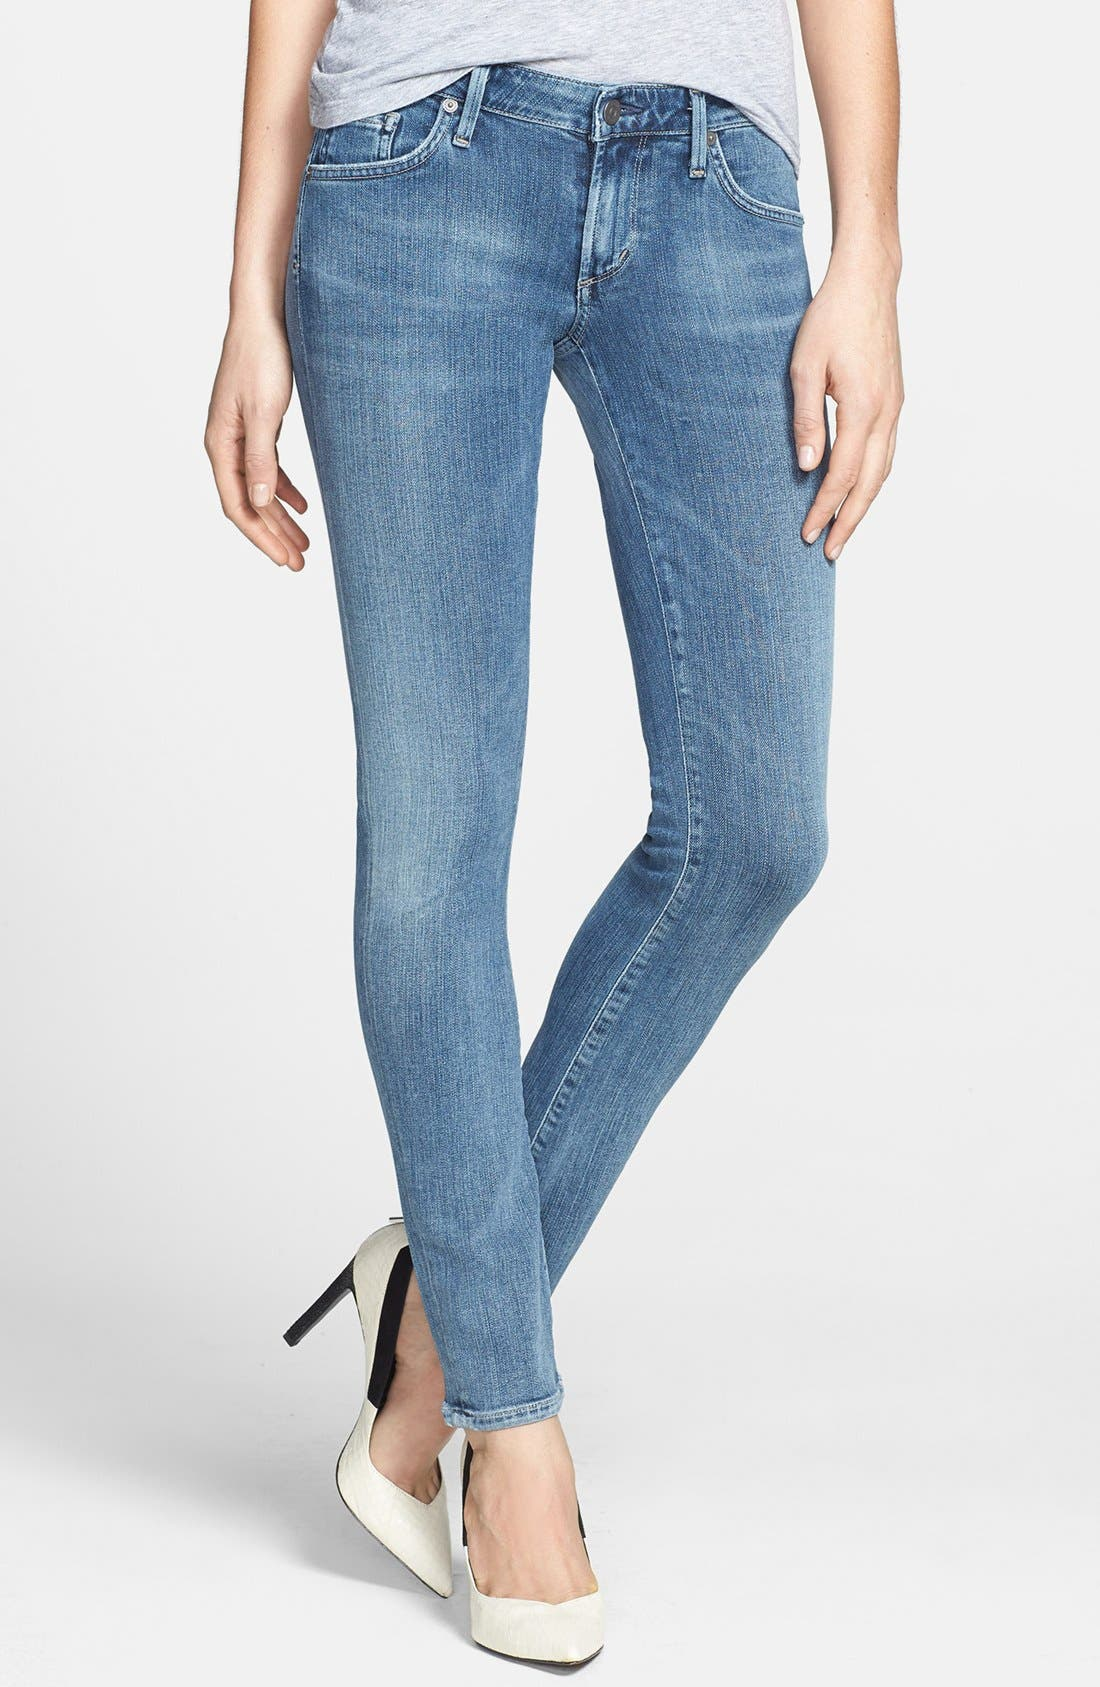 Main Image - Citizens of Humanity 'Racer' Low Rise Skinny Jeans (Gaze)